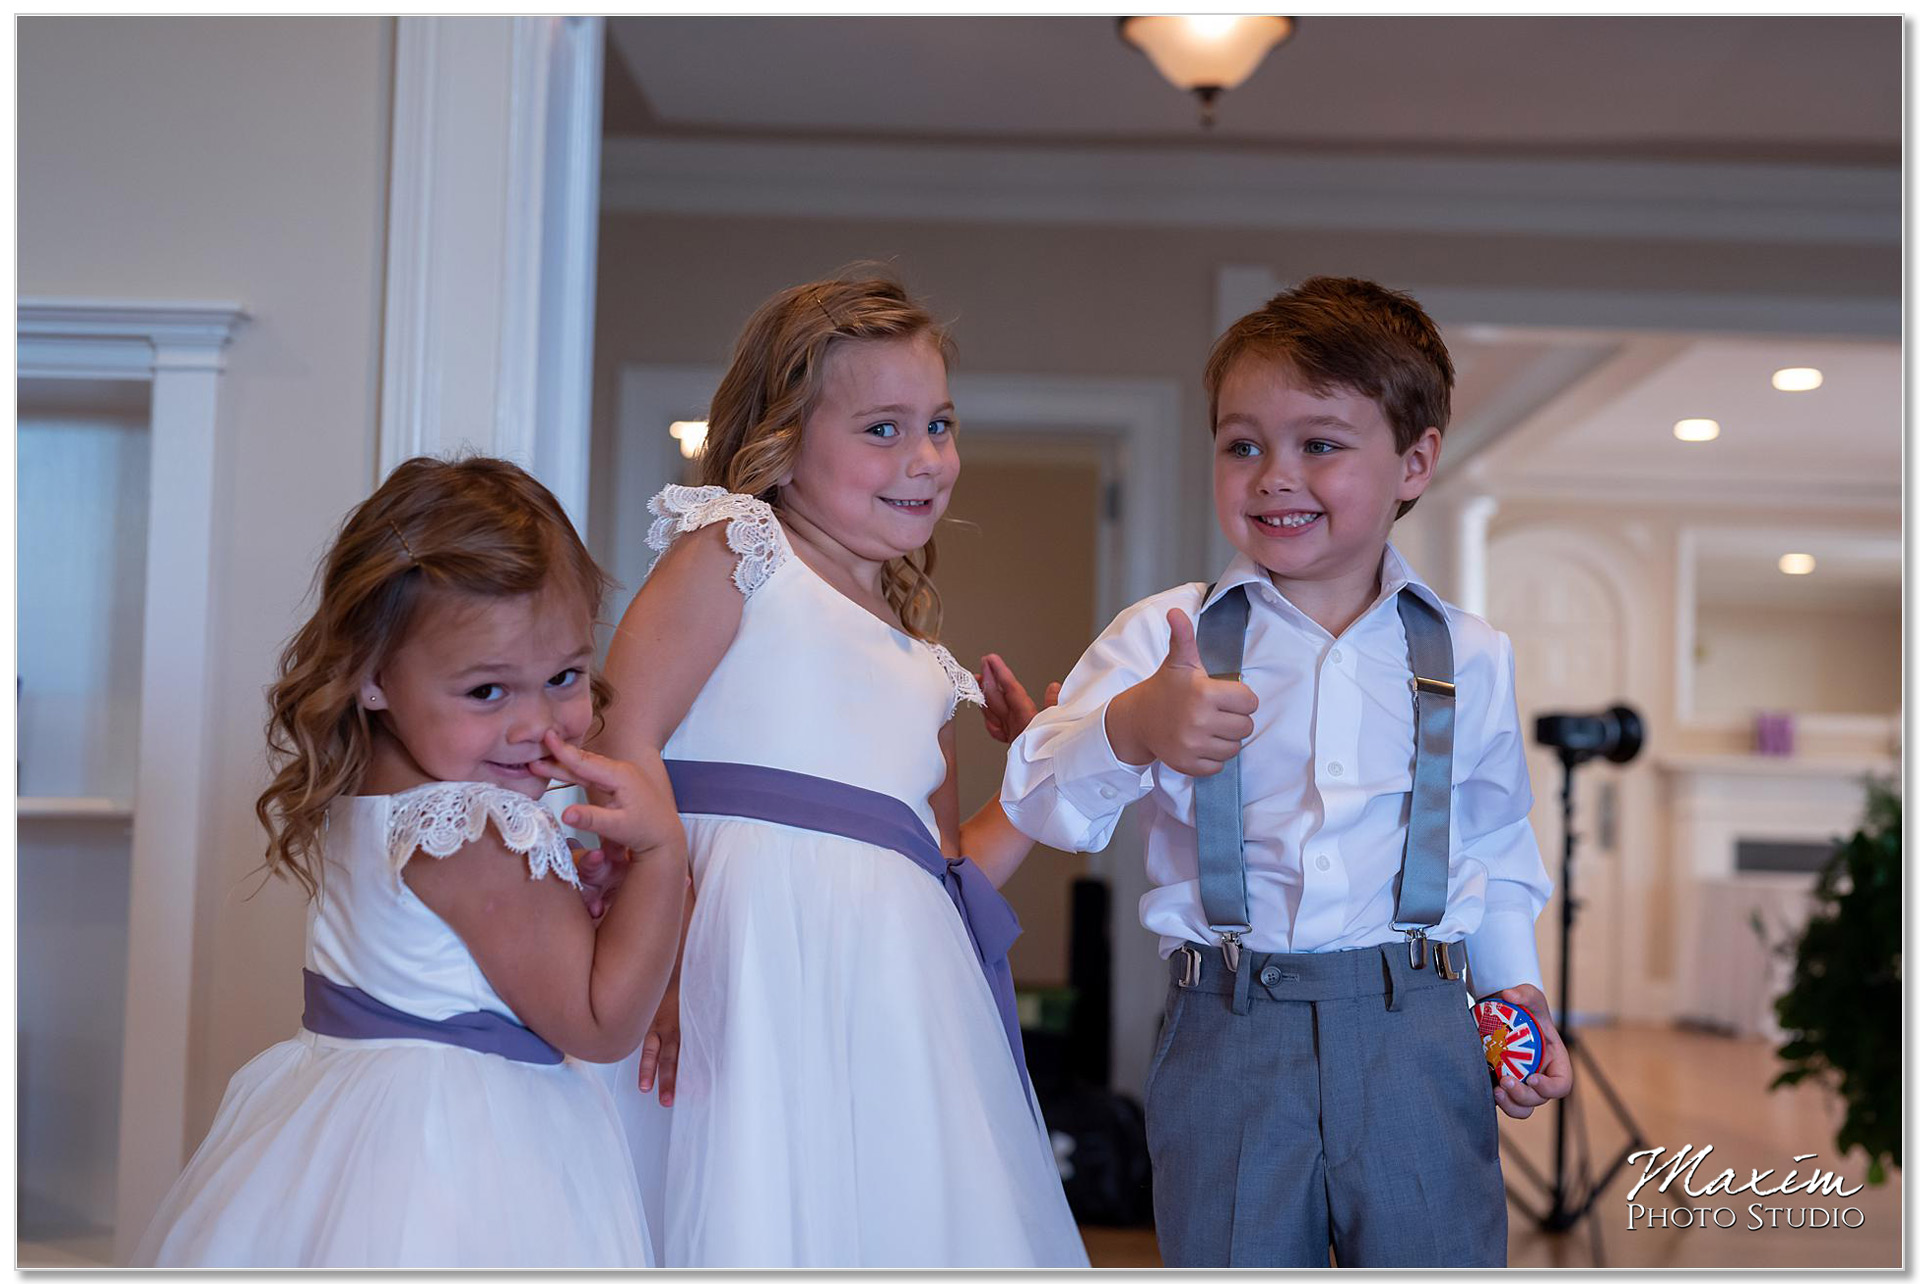 Flower girl ring bearer French Park Wedding